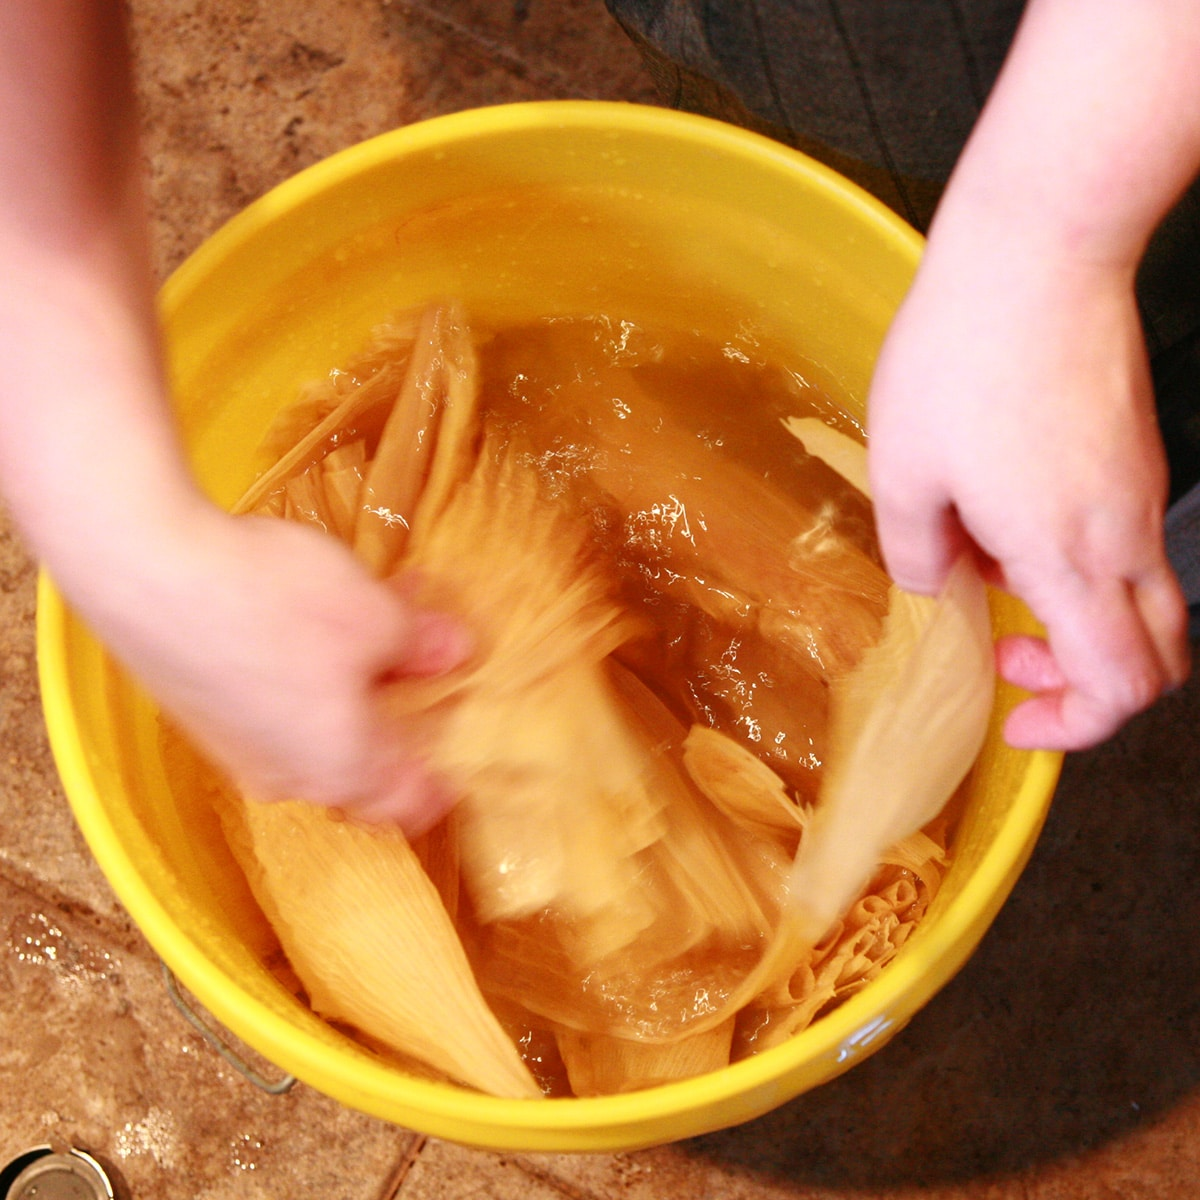 Hands are separating a bag of corn husks, in a large yellow bucket of water.